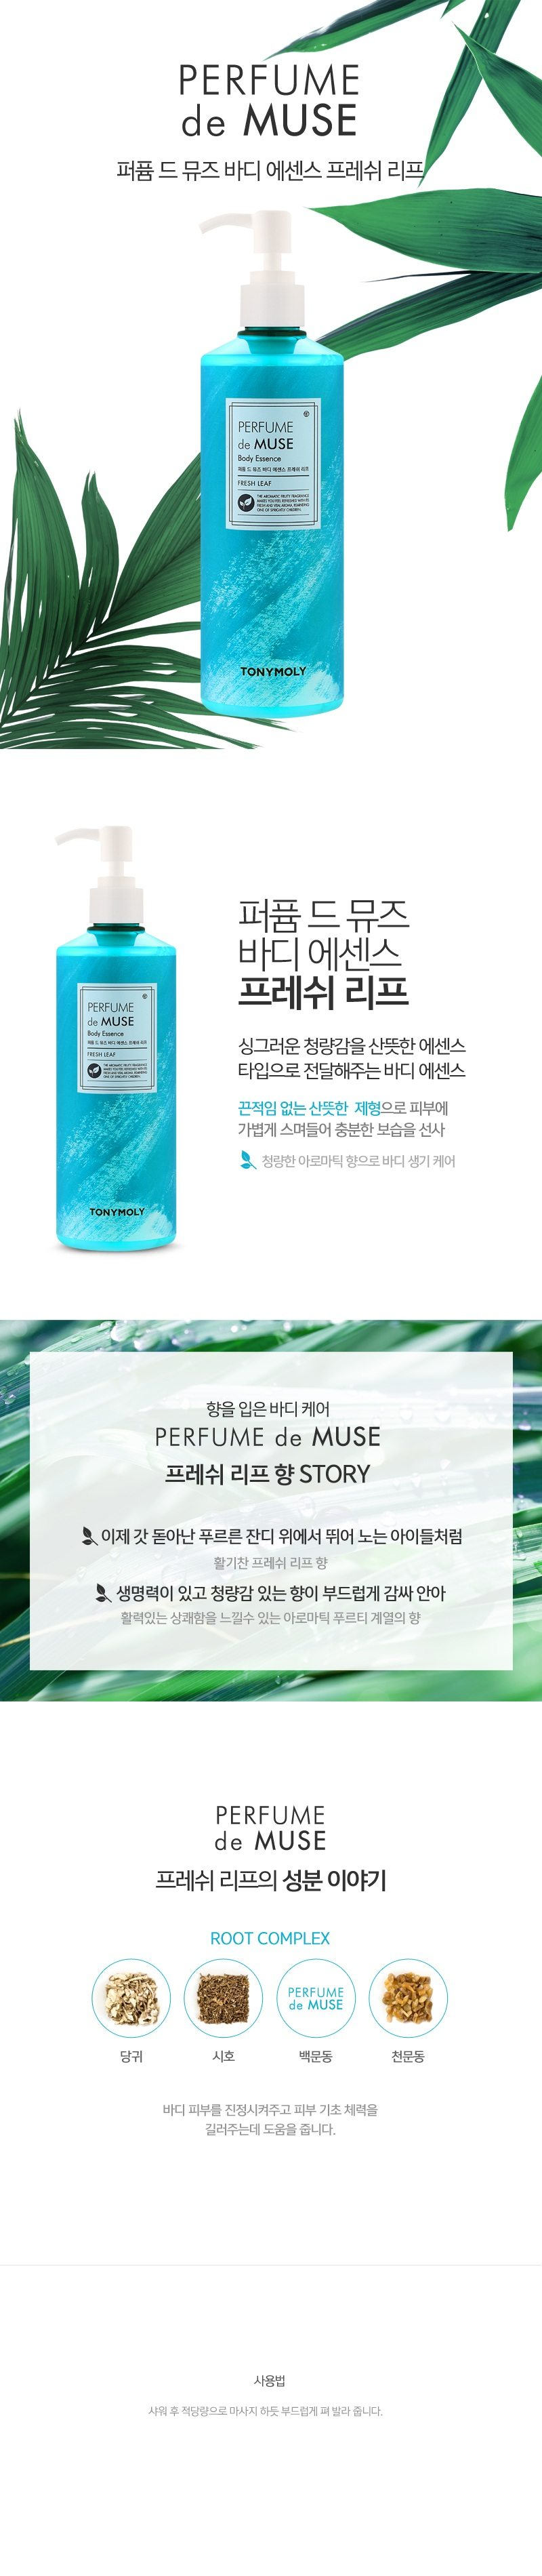 Tony Moly Perfume De Muse Body Essence Fresh Leaf korean cosmetic skincare product online shop malaysia nepal bhutan1